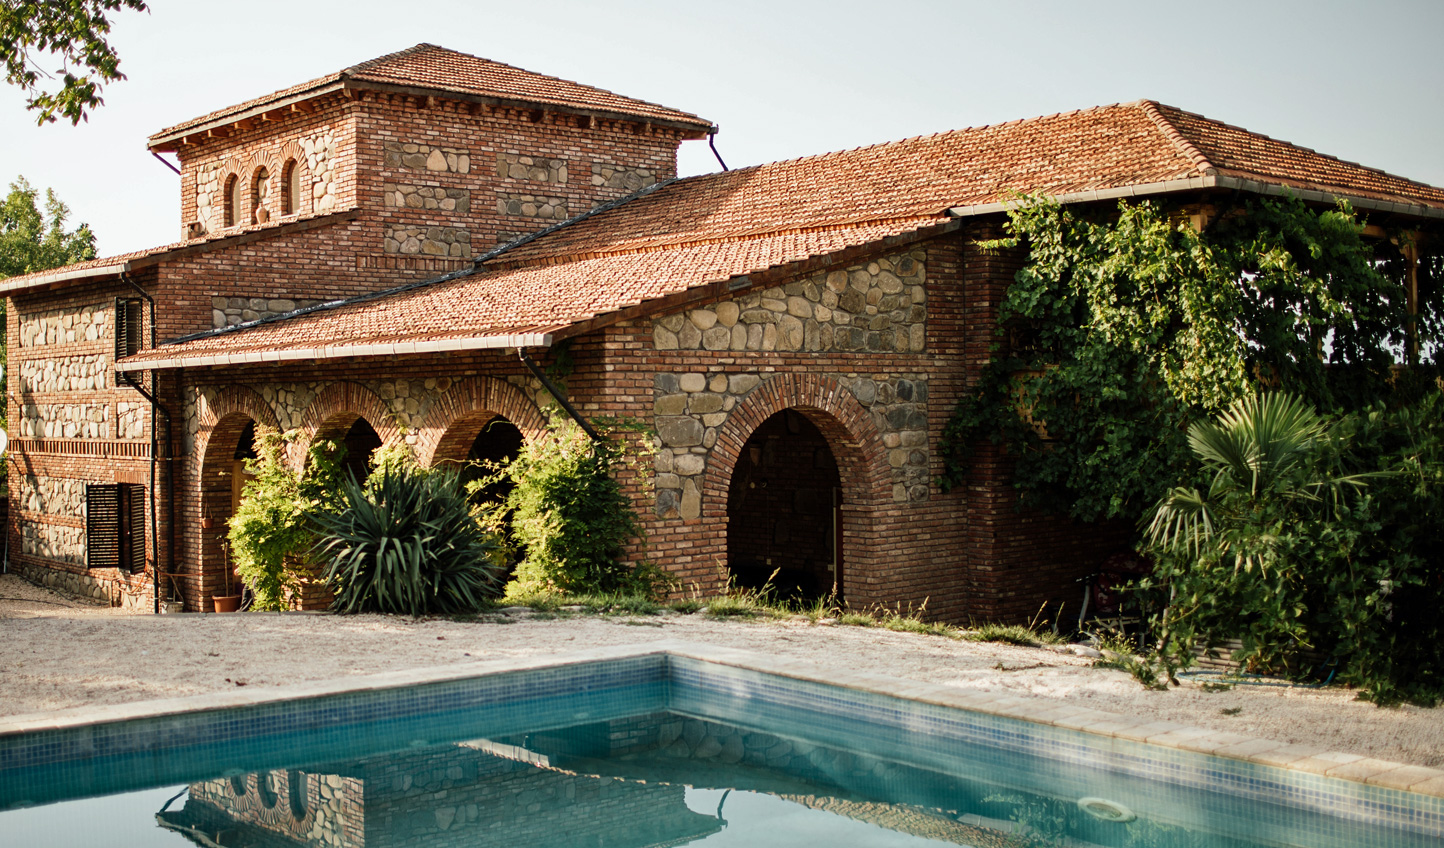 Revel in the peace and tranquility of Chateau Svanidze